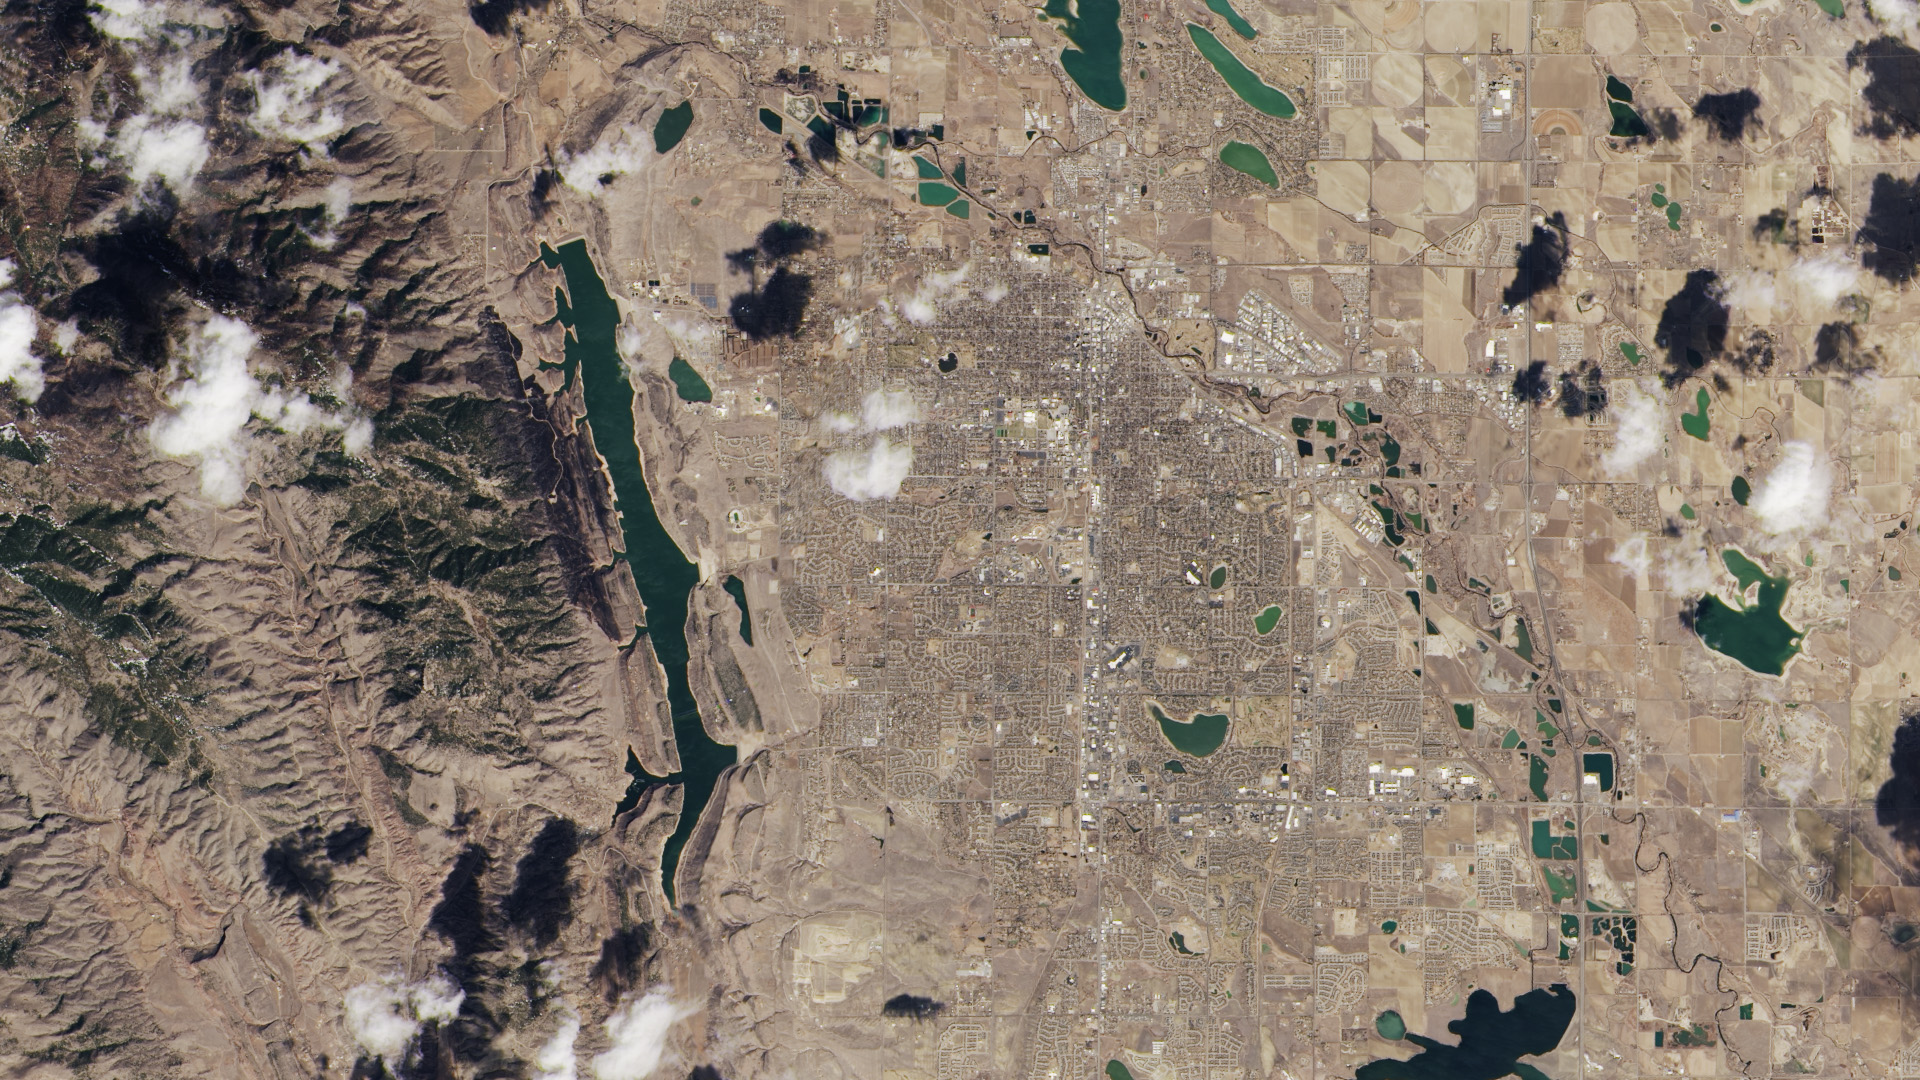 First View From The New Landsat Satellite